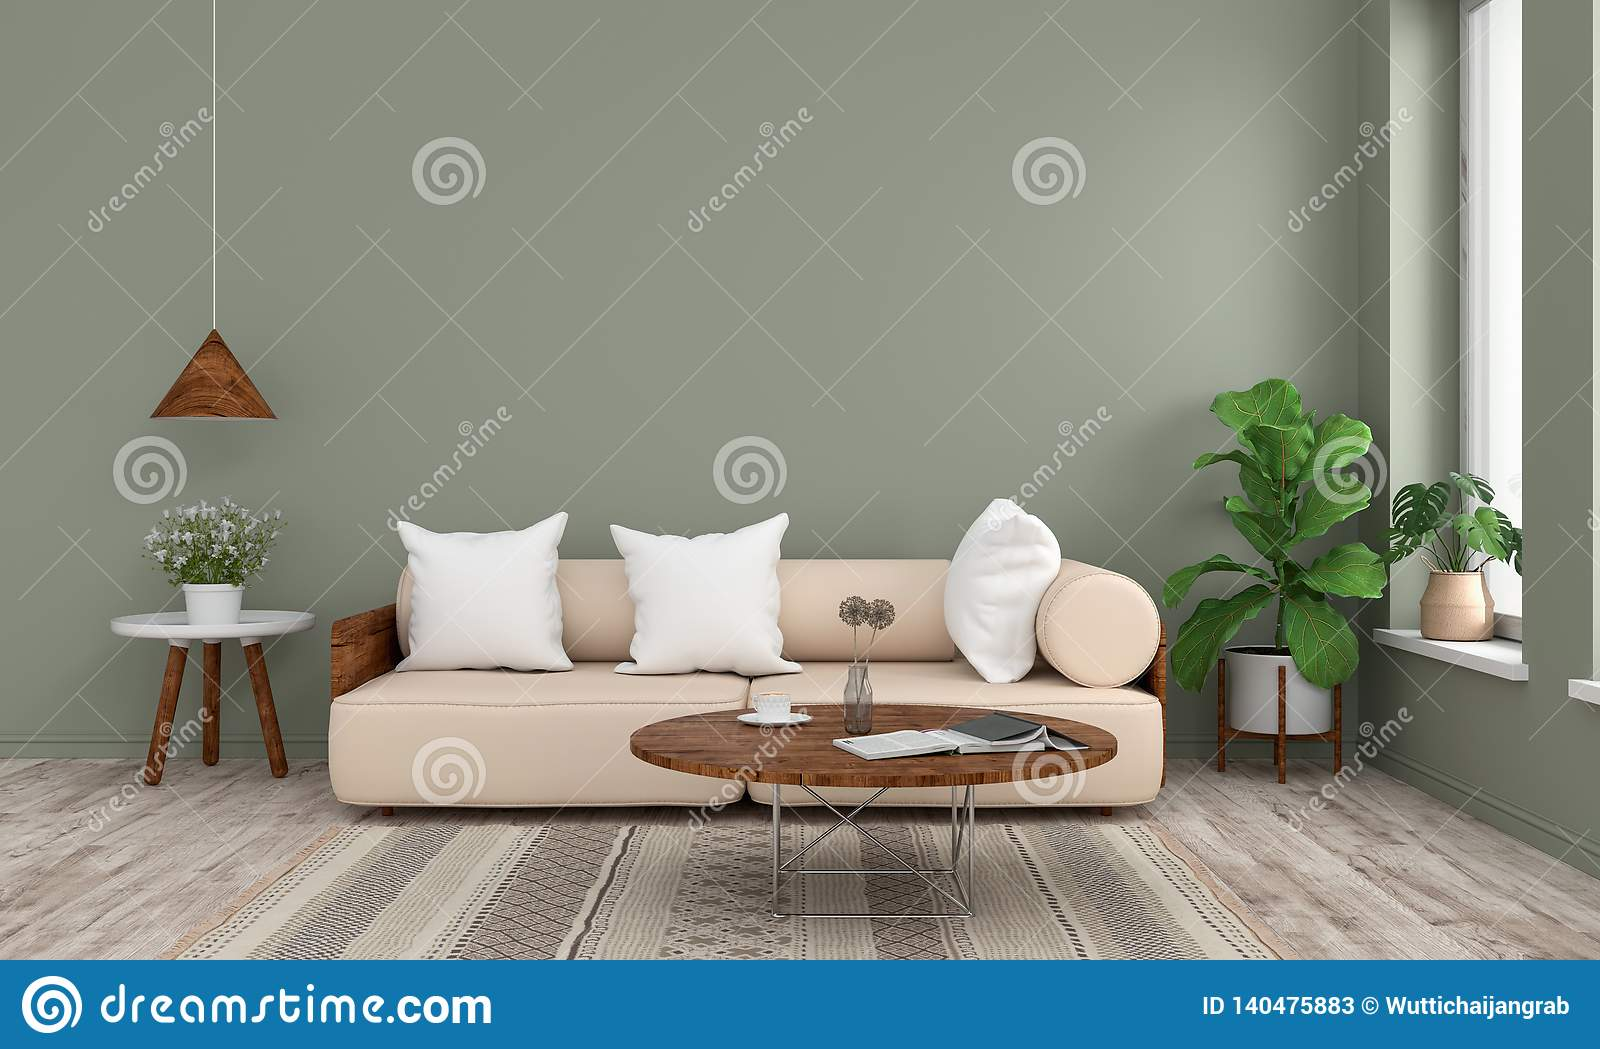 Green Round Table.Sofa And Wood Round Table In Green Living Room 3d Rendering Stock